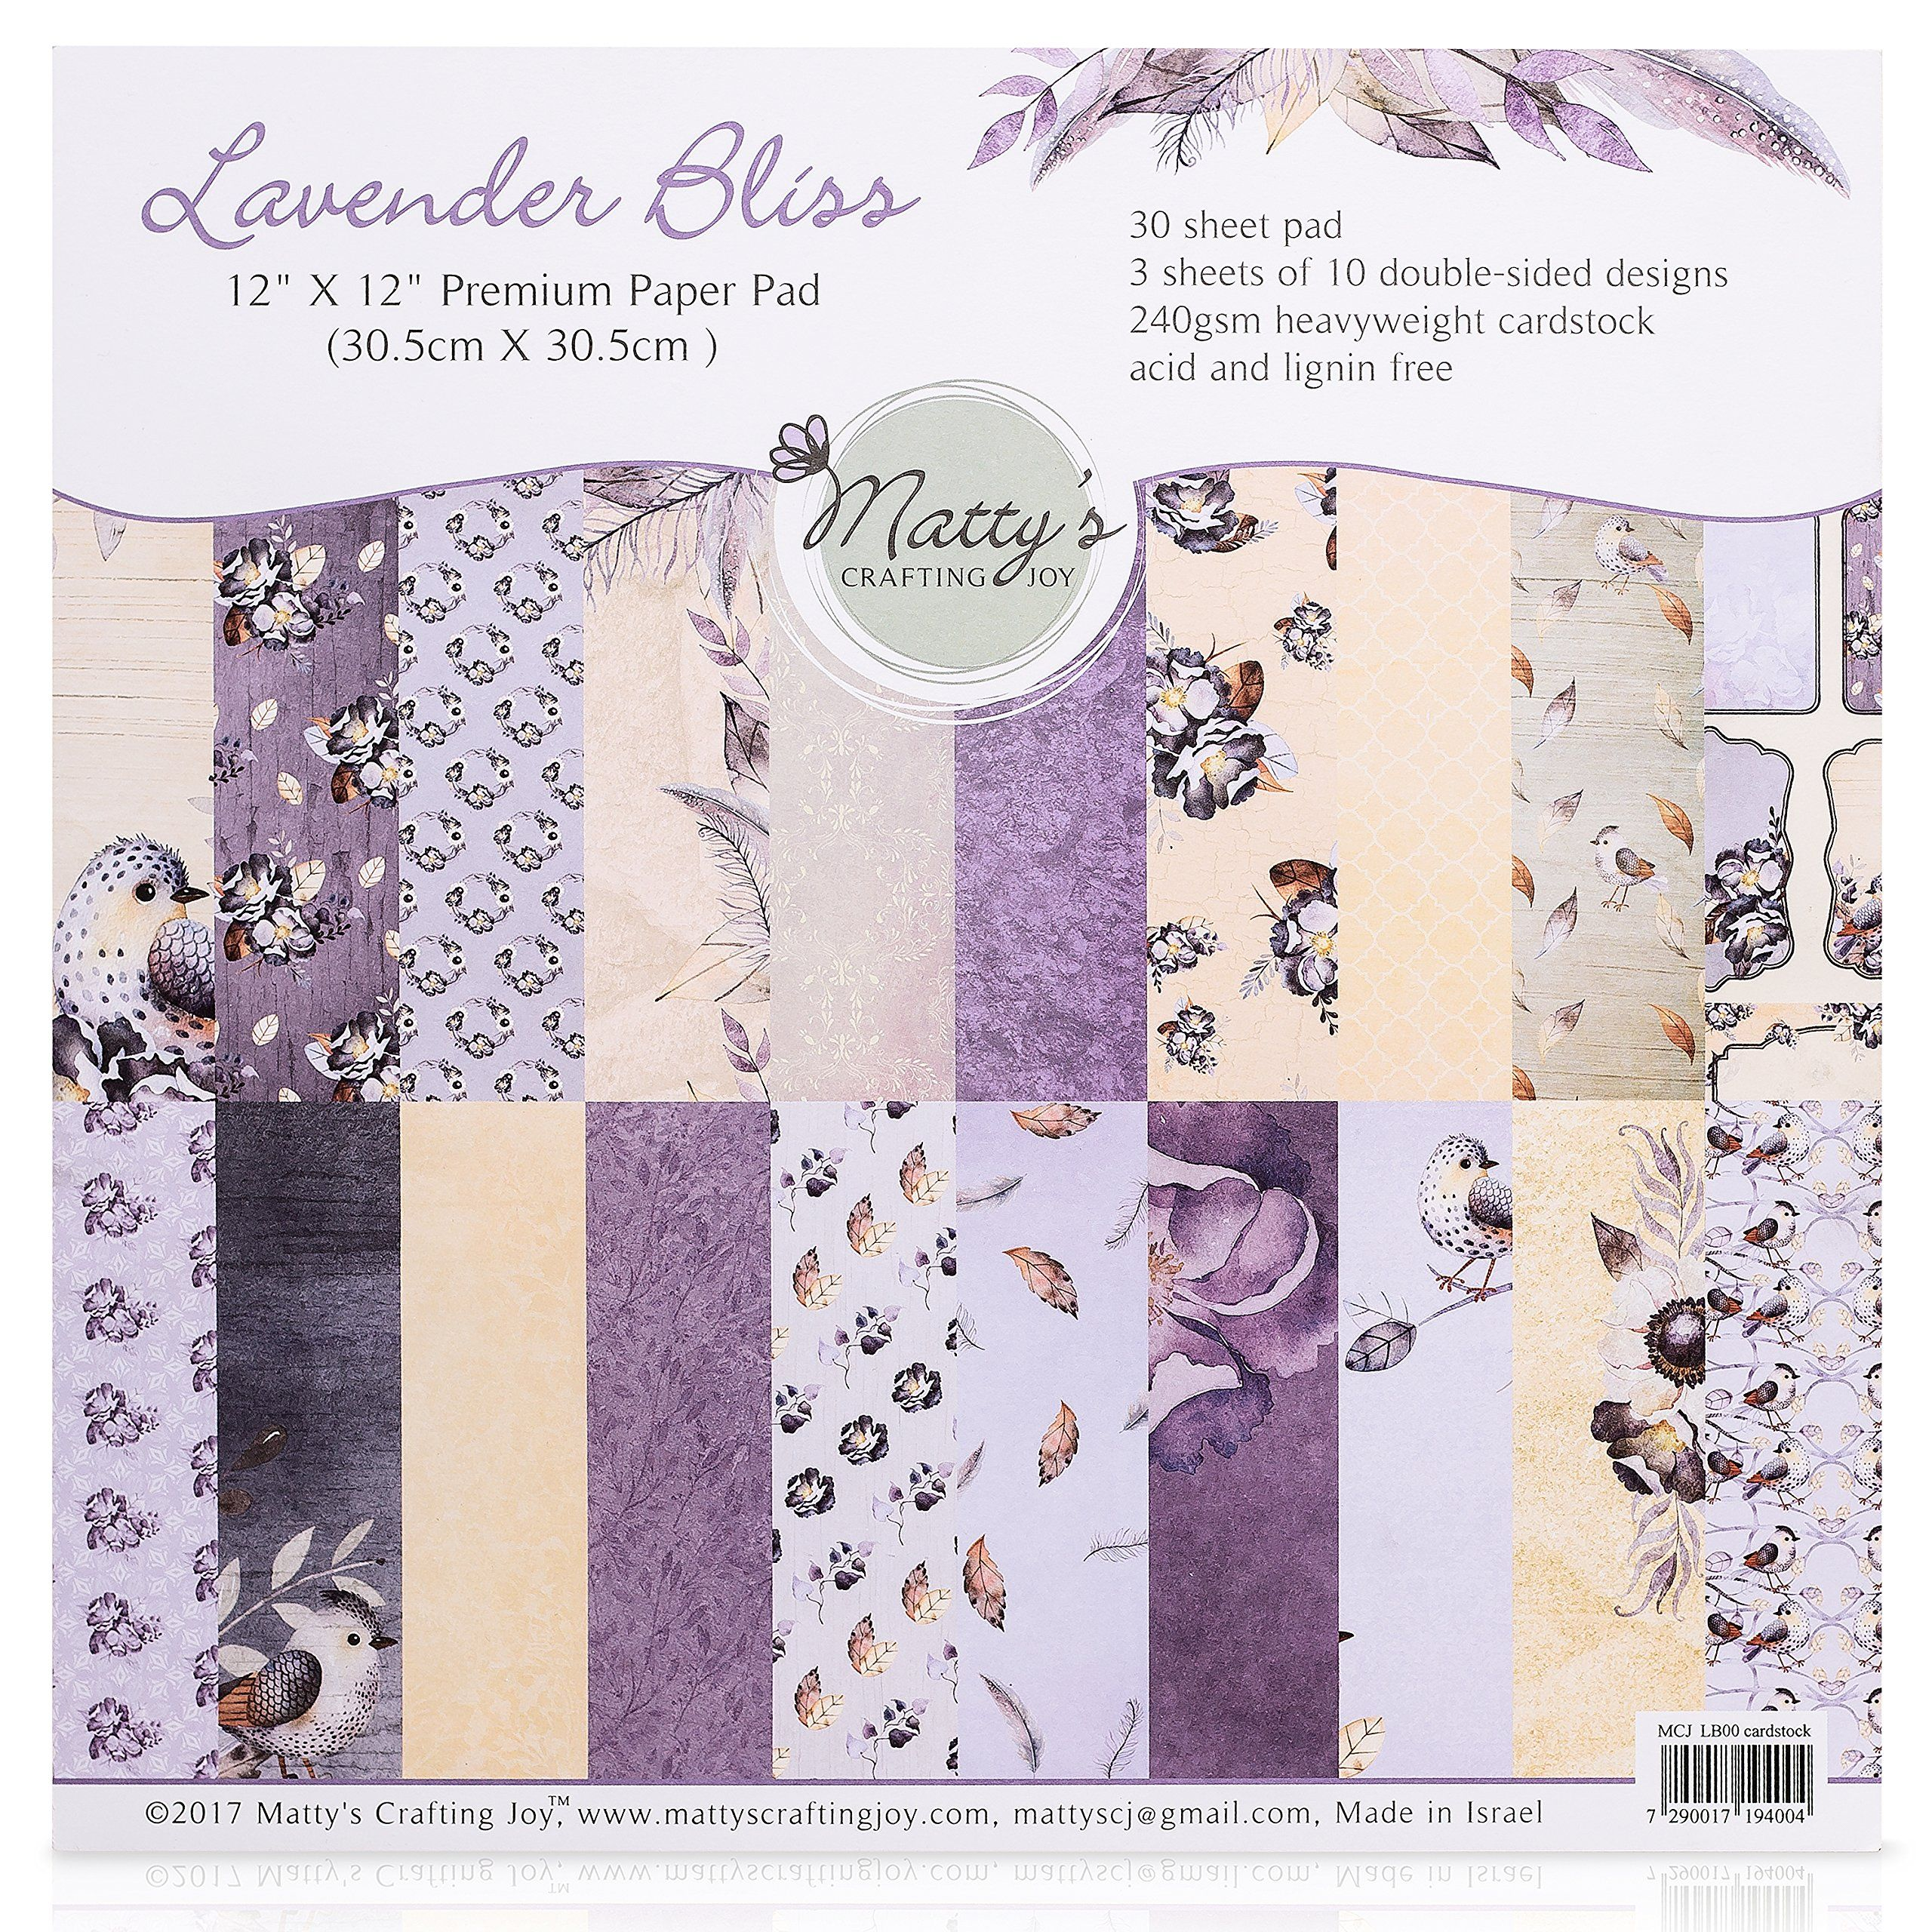 Matty S Crafting Joy Lavender Bliss 12x12 Double Sided Scrapbook Cardstock Paper Pad 30 Floral Designer Premi Scrapbook Cardstock Paper Pads Cardstock Paper